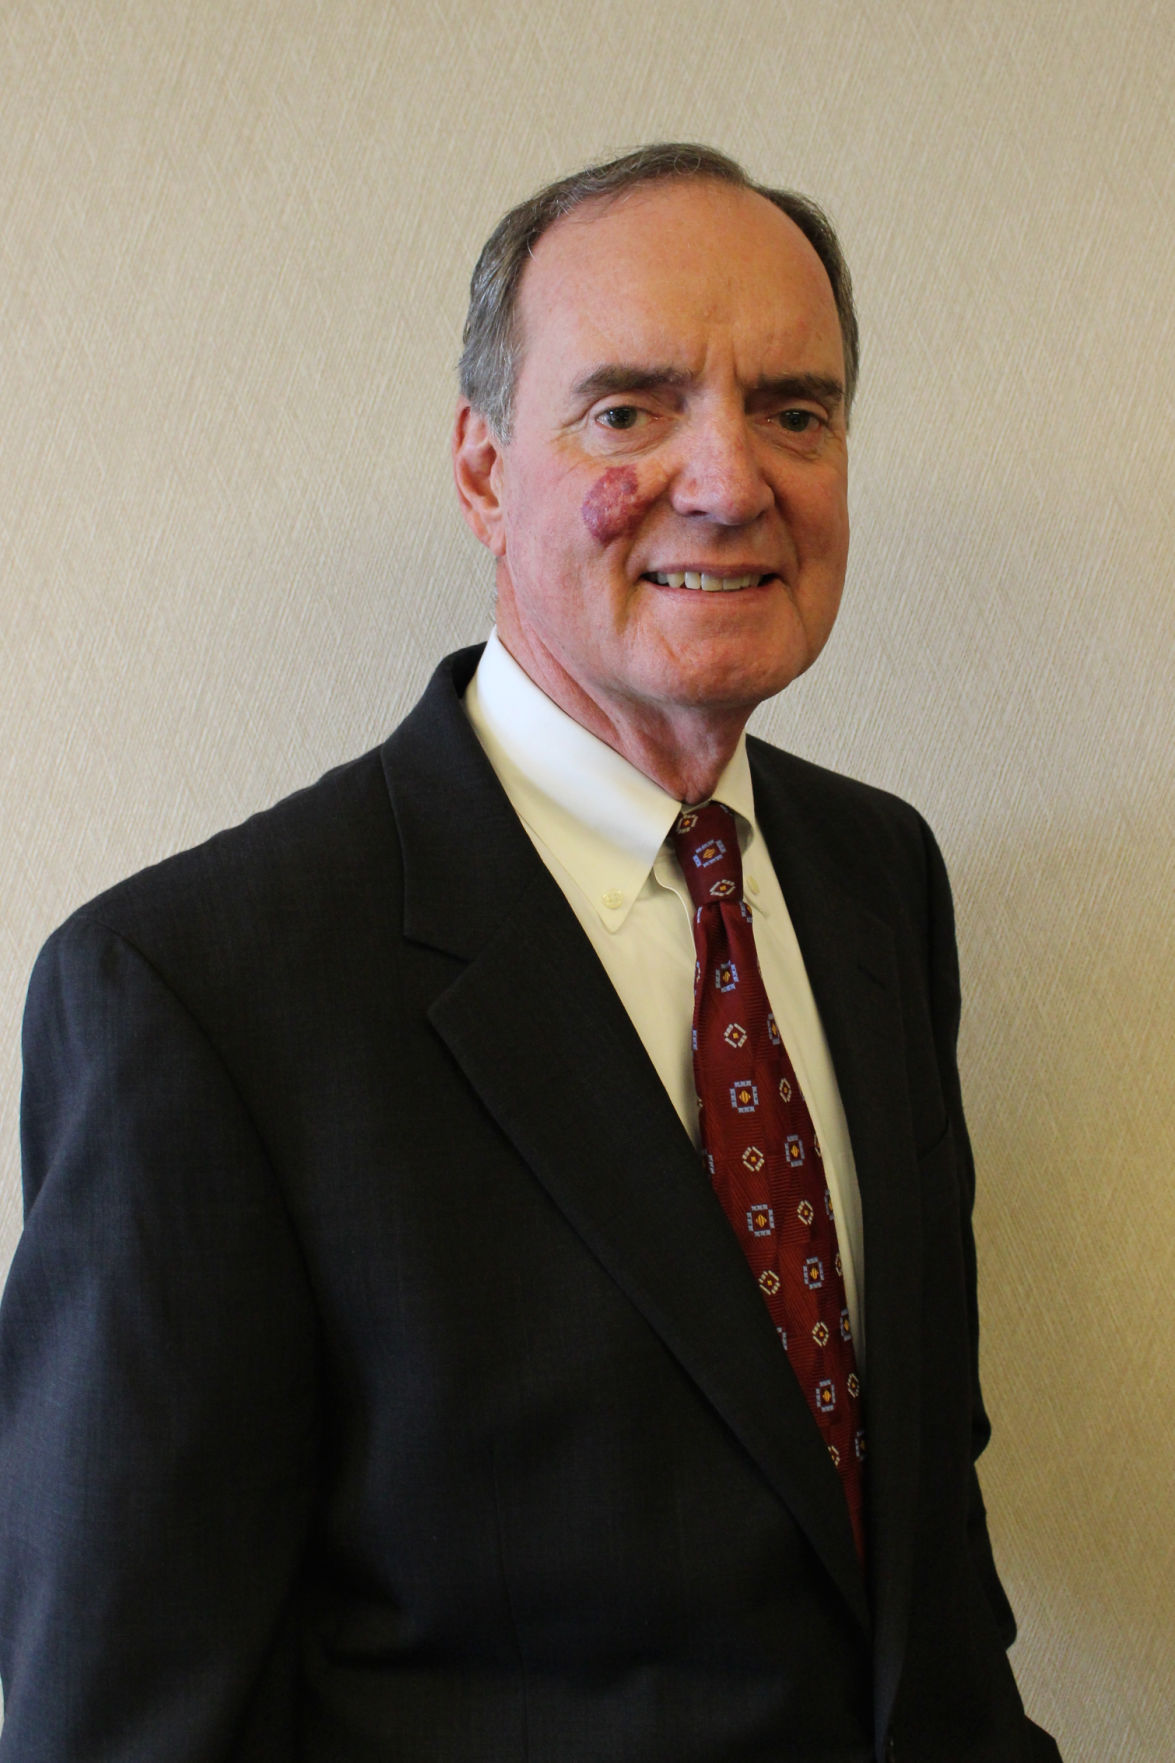 Mark R. Hogan